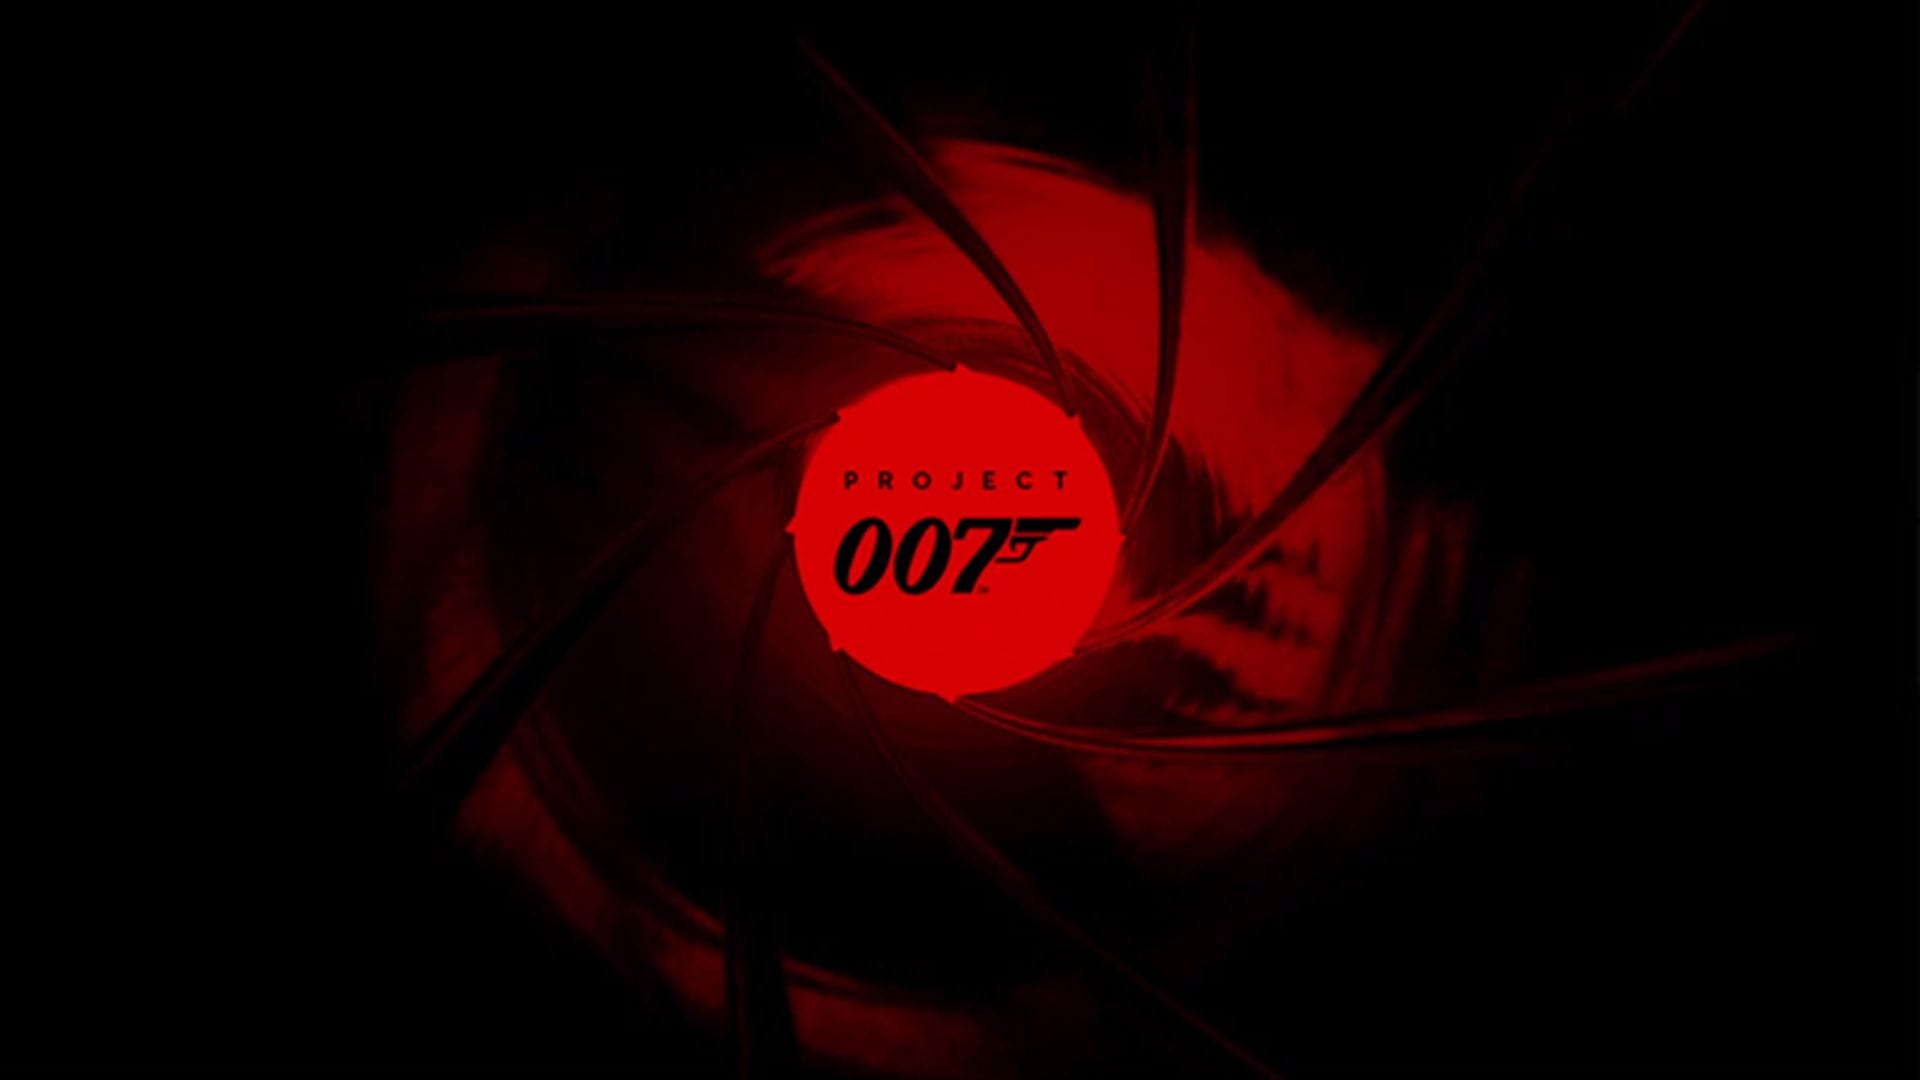 Project007